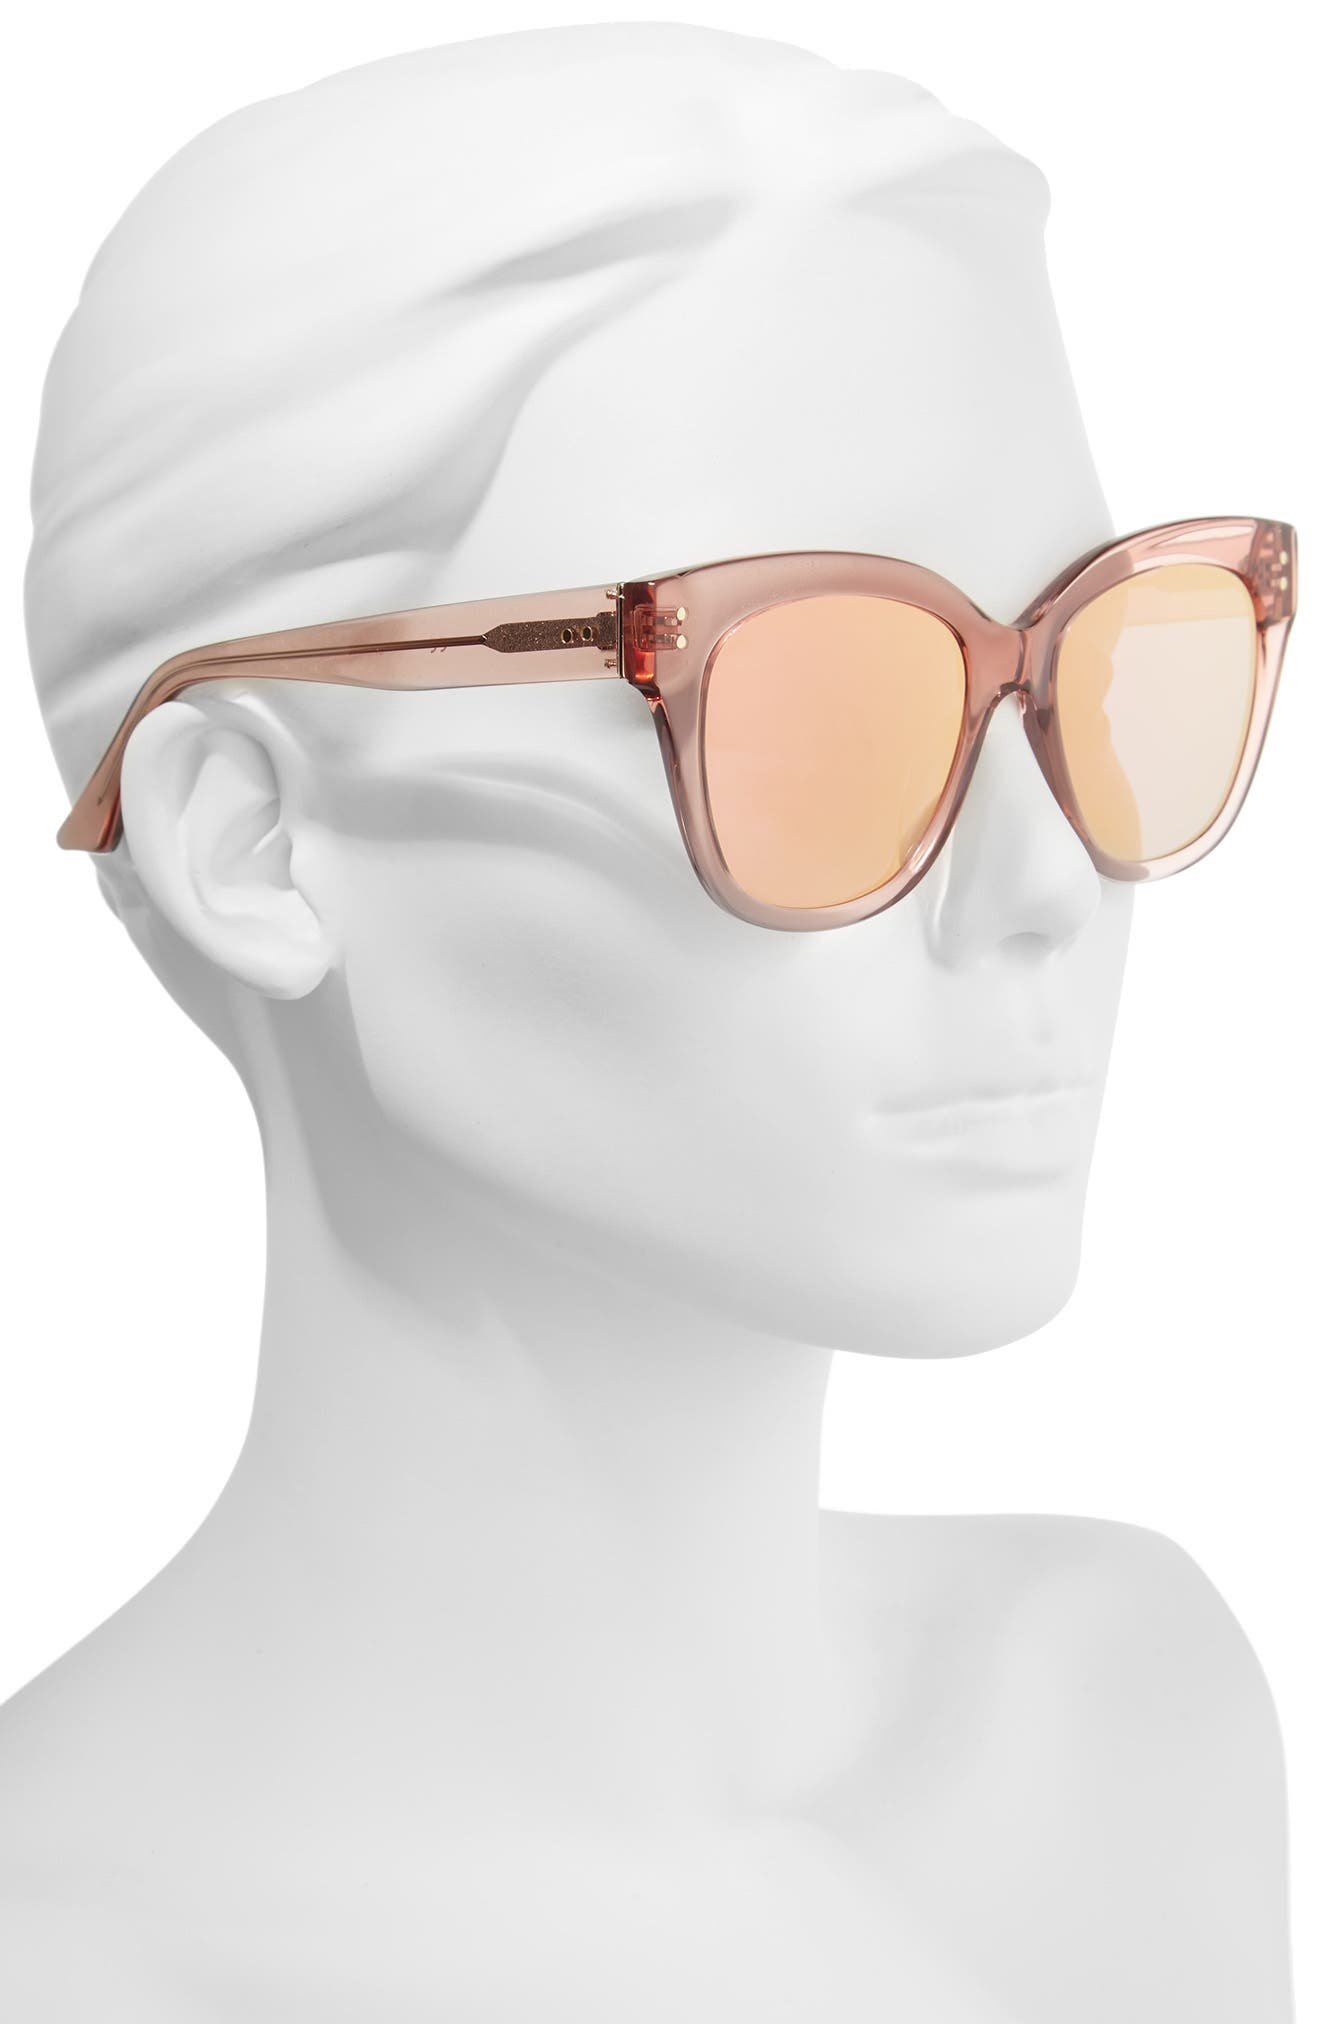 See Saw 55mm Cat Eye Sunglasses,                             Alternate thumbnail 2, color,                             650